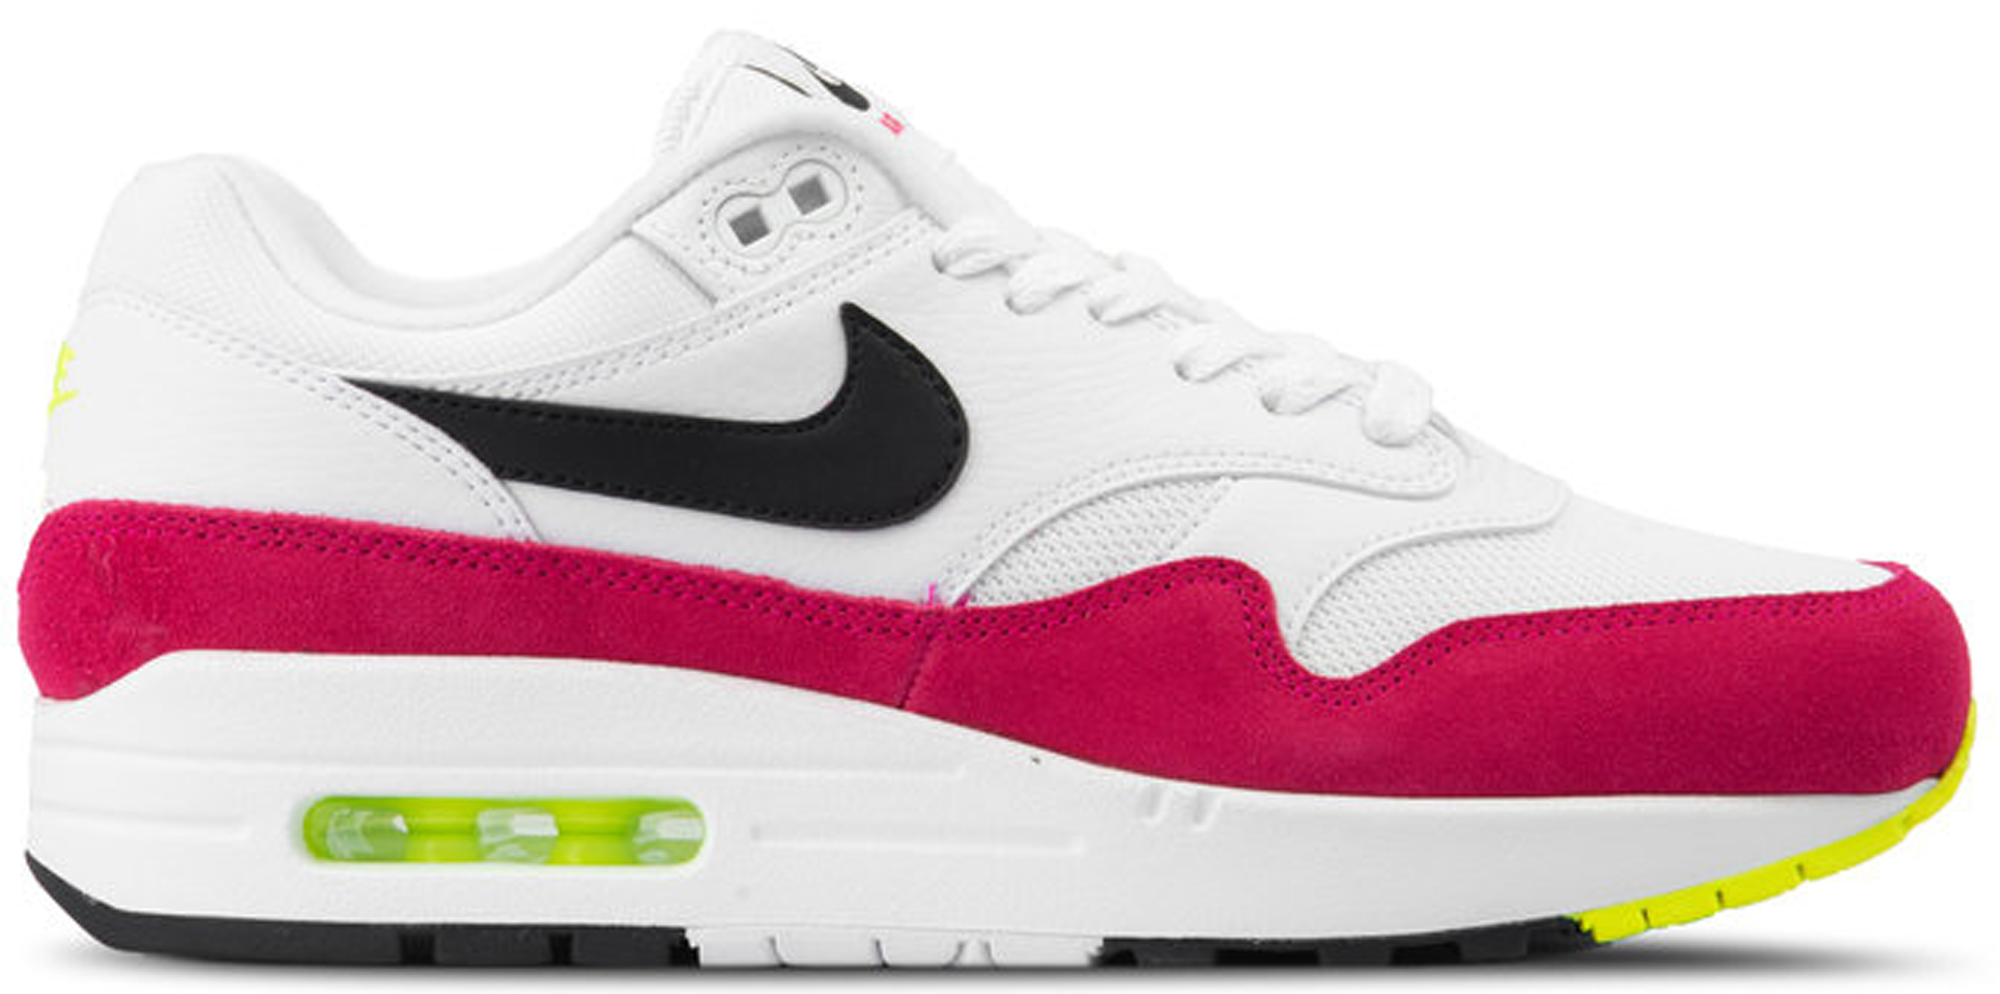 Nike Air Max 1 OG Red Release Date 908375 103 | Sole Collector